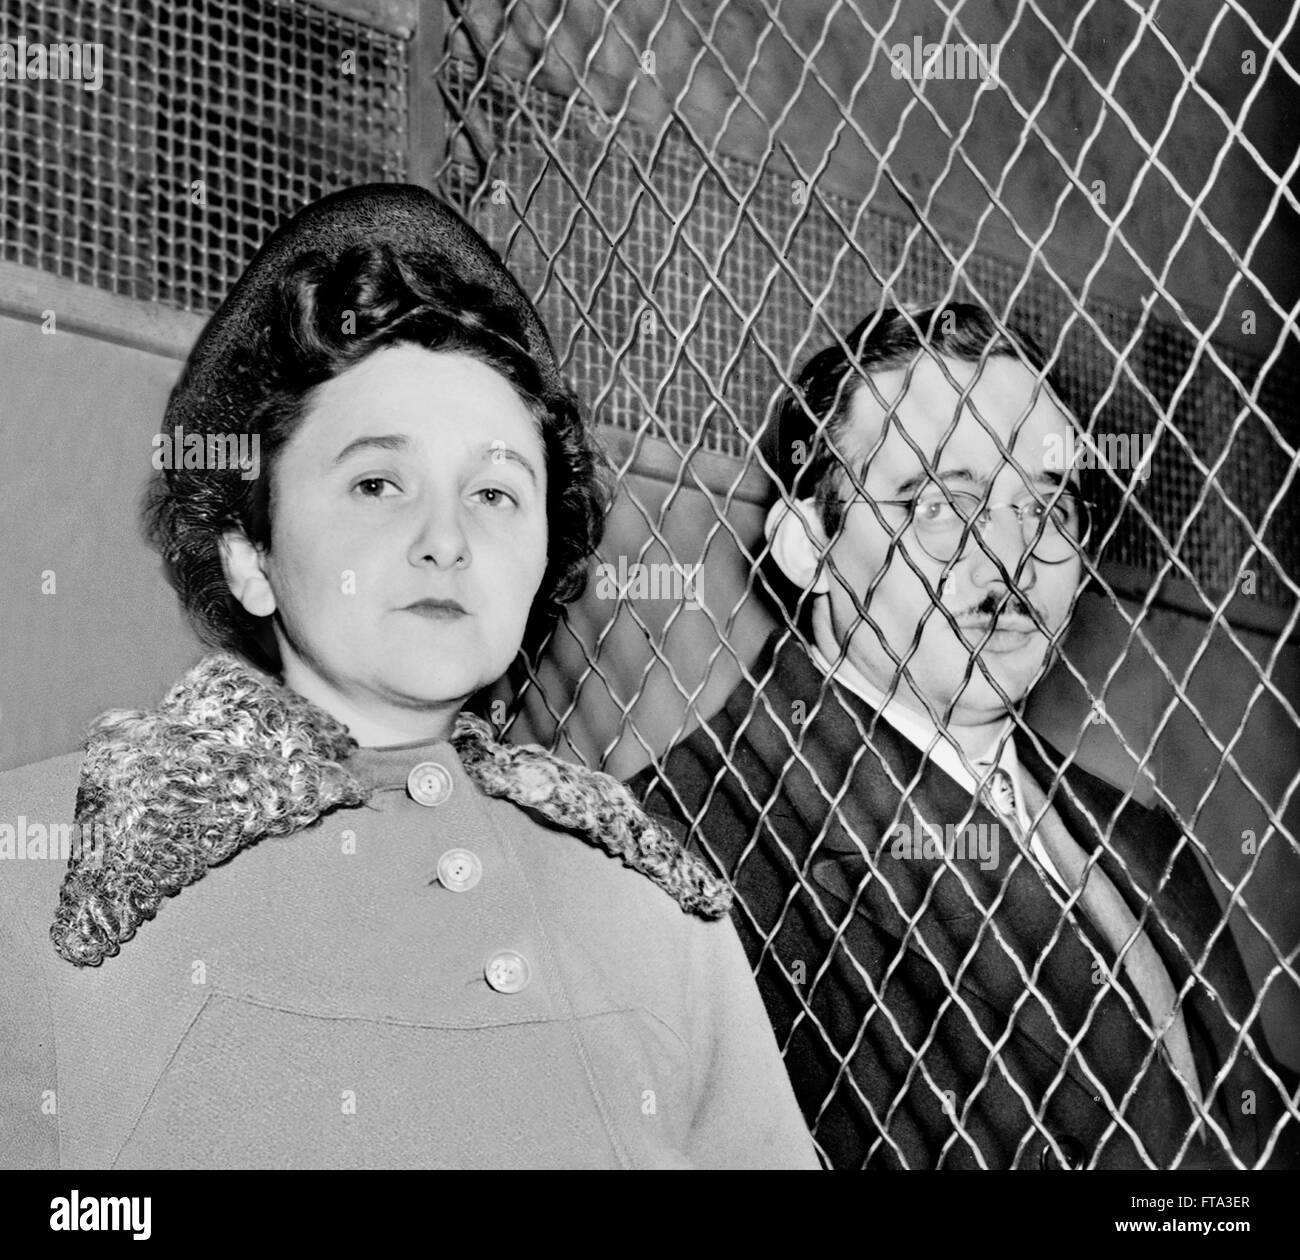 Julius and Ethel Rosenberg, March 1951. - Stock Image